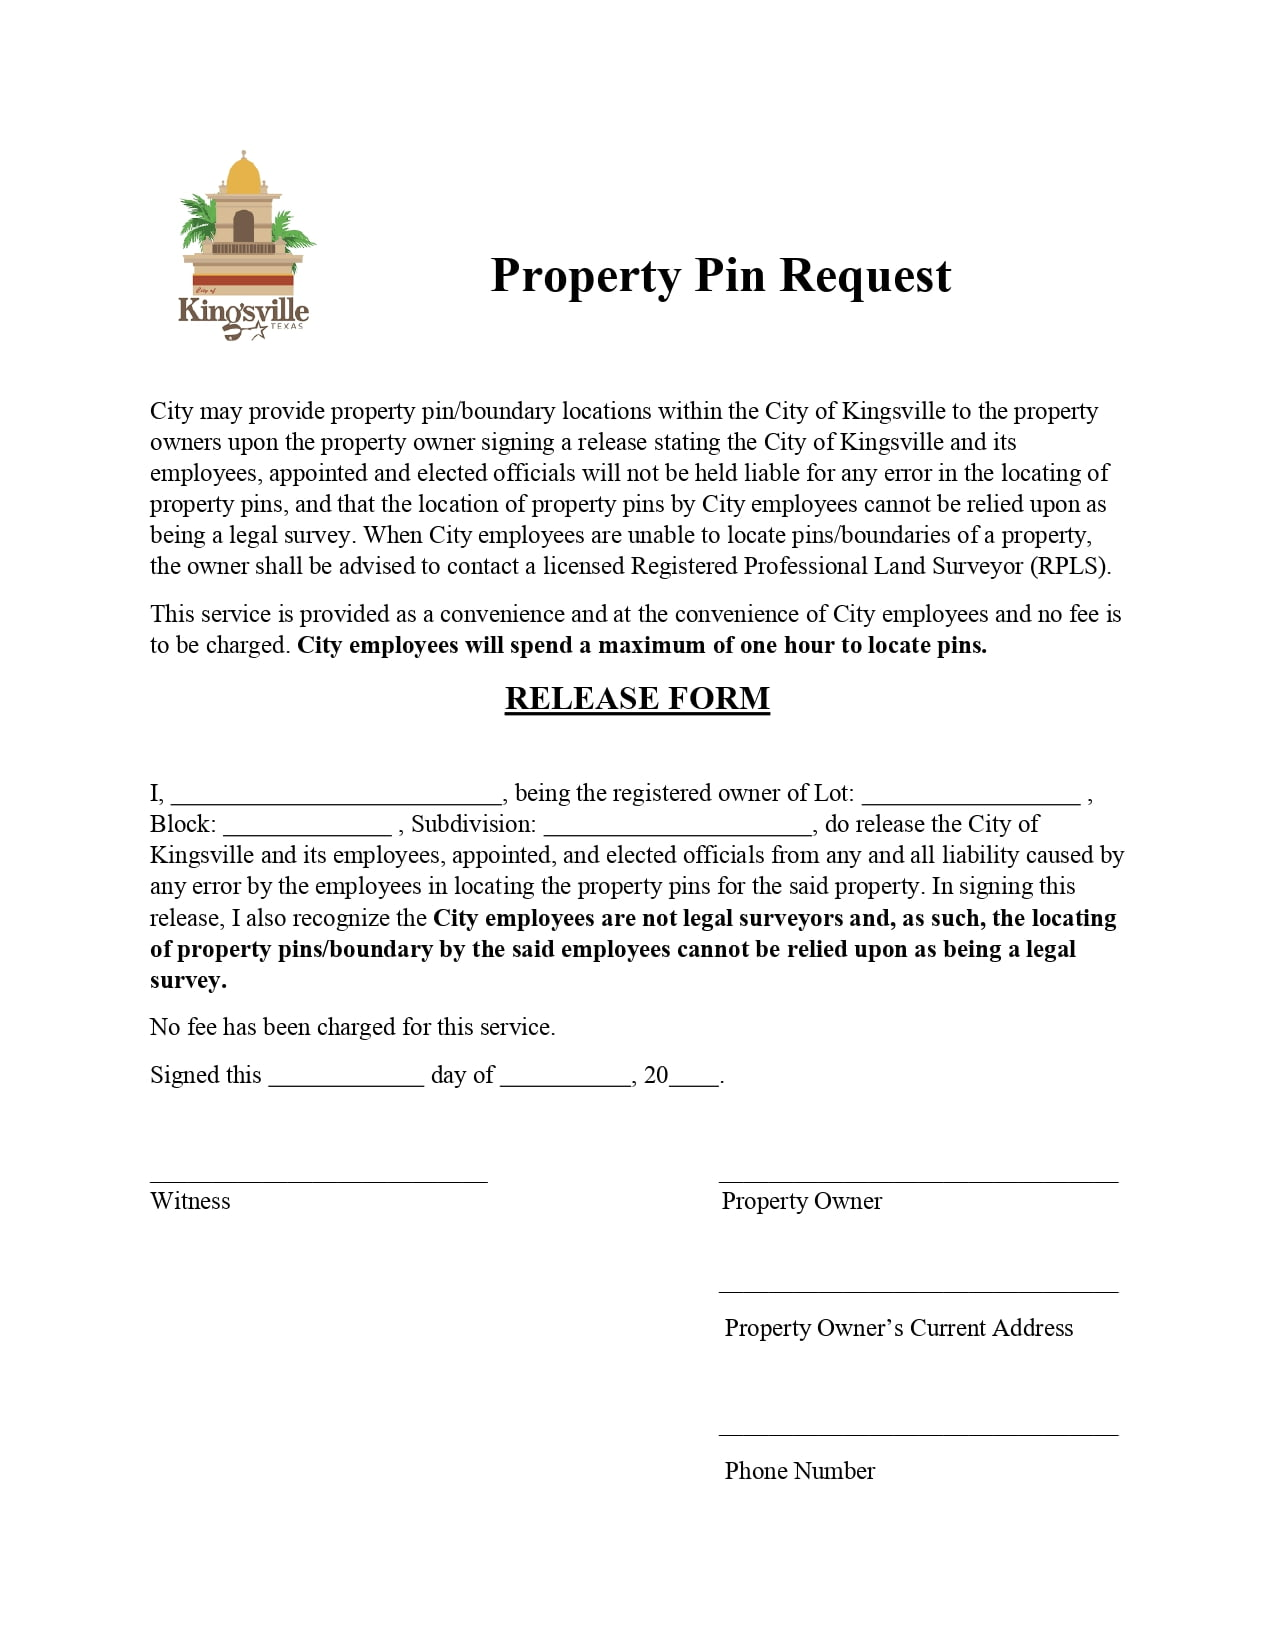 Property Pin Request